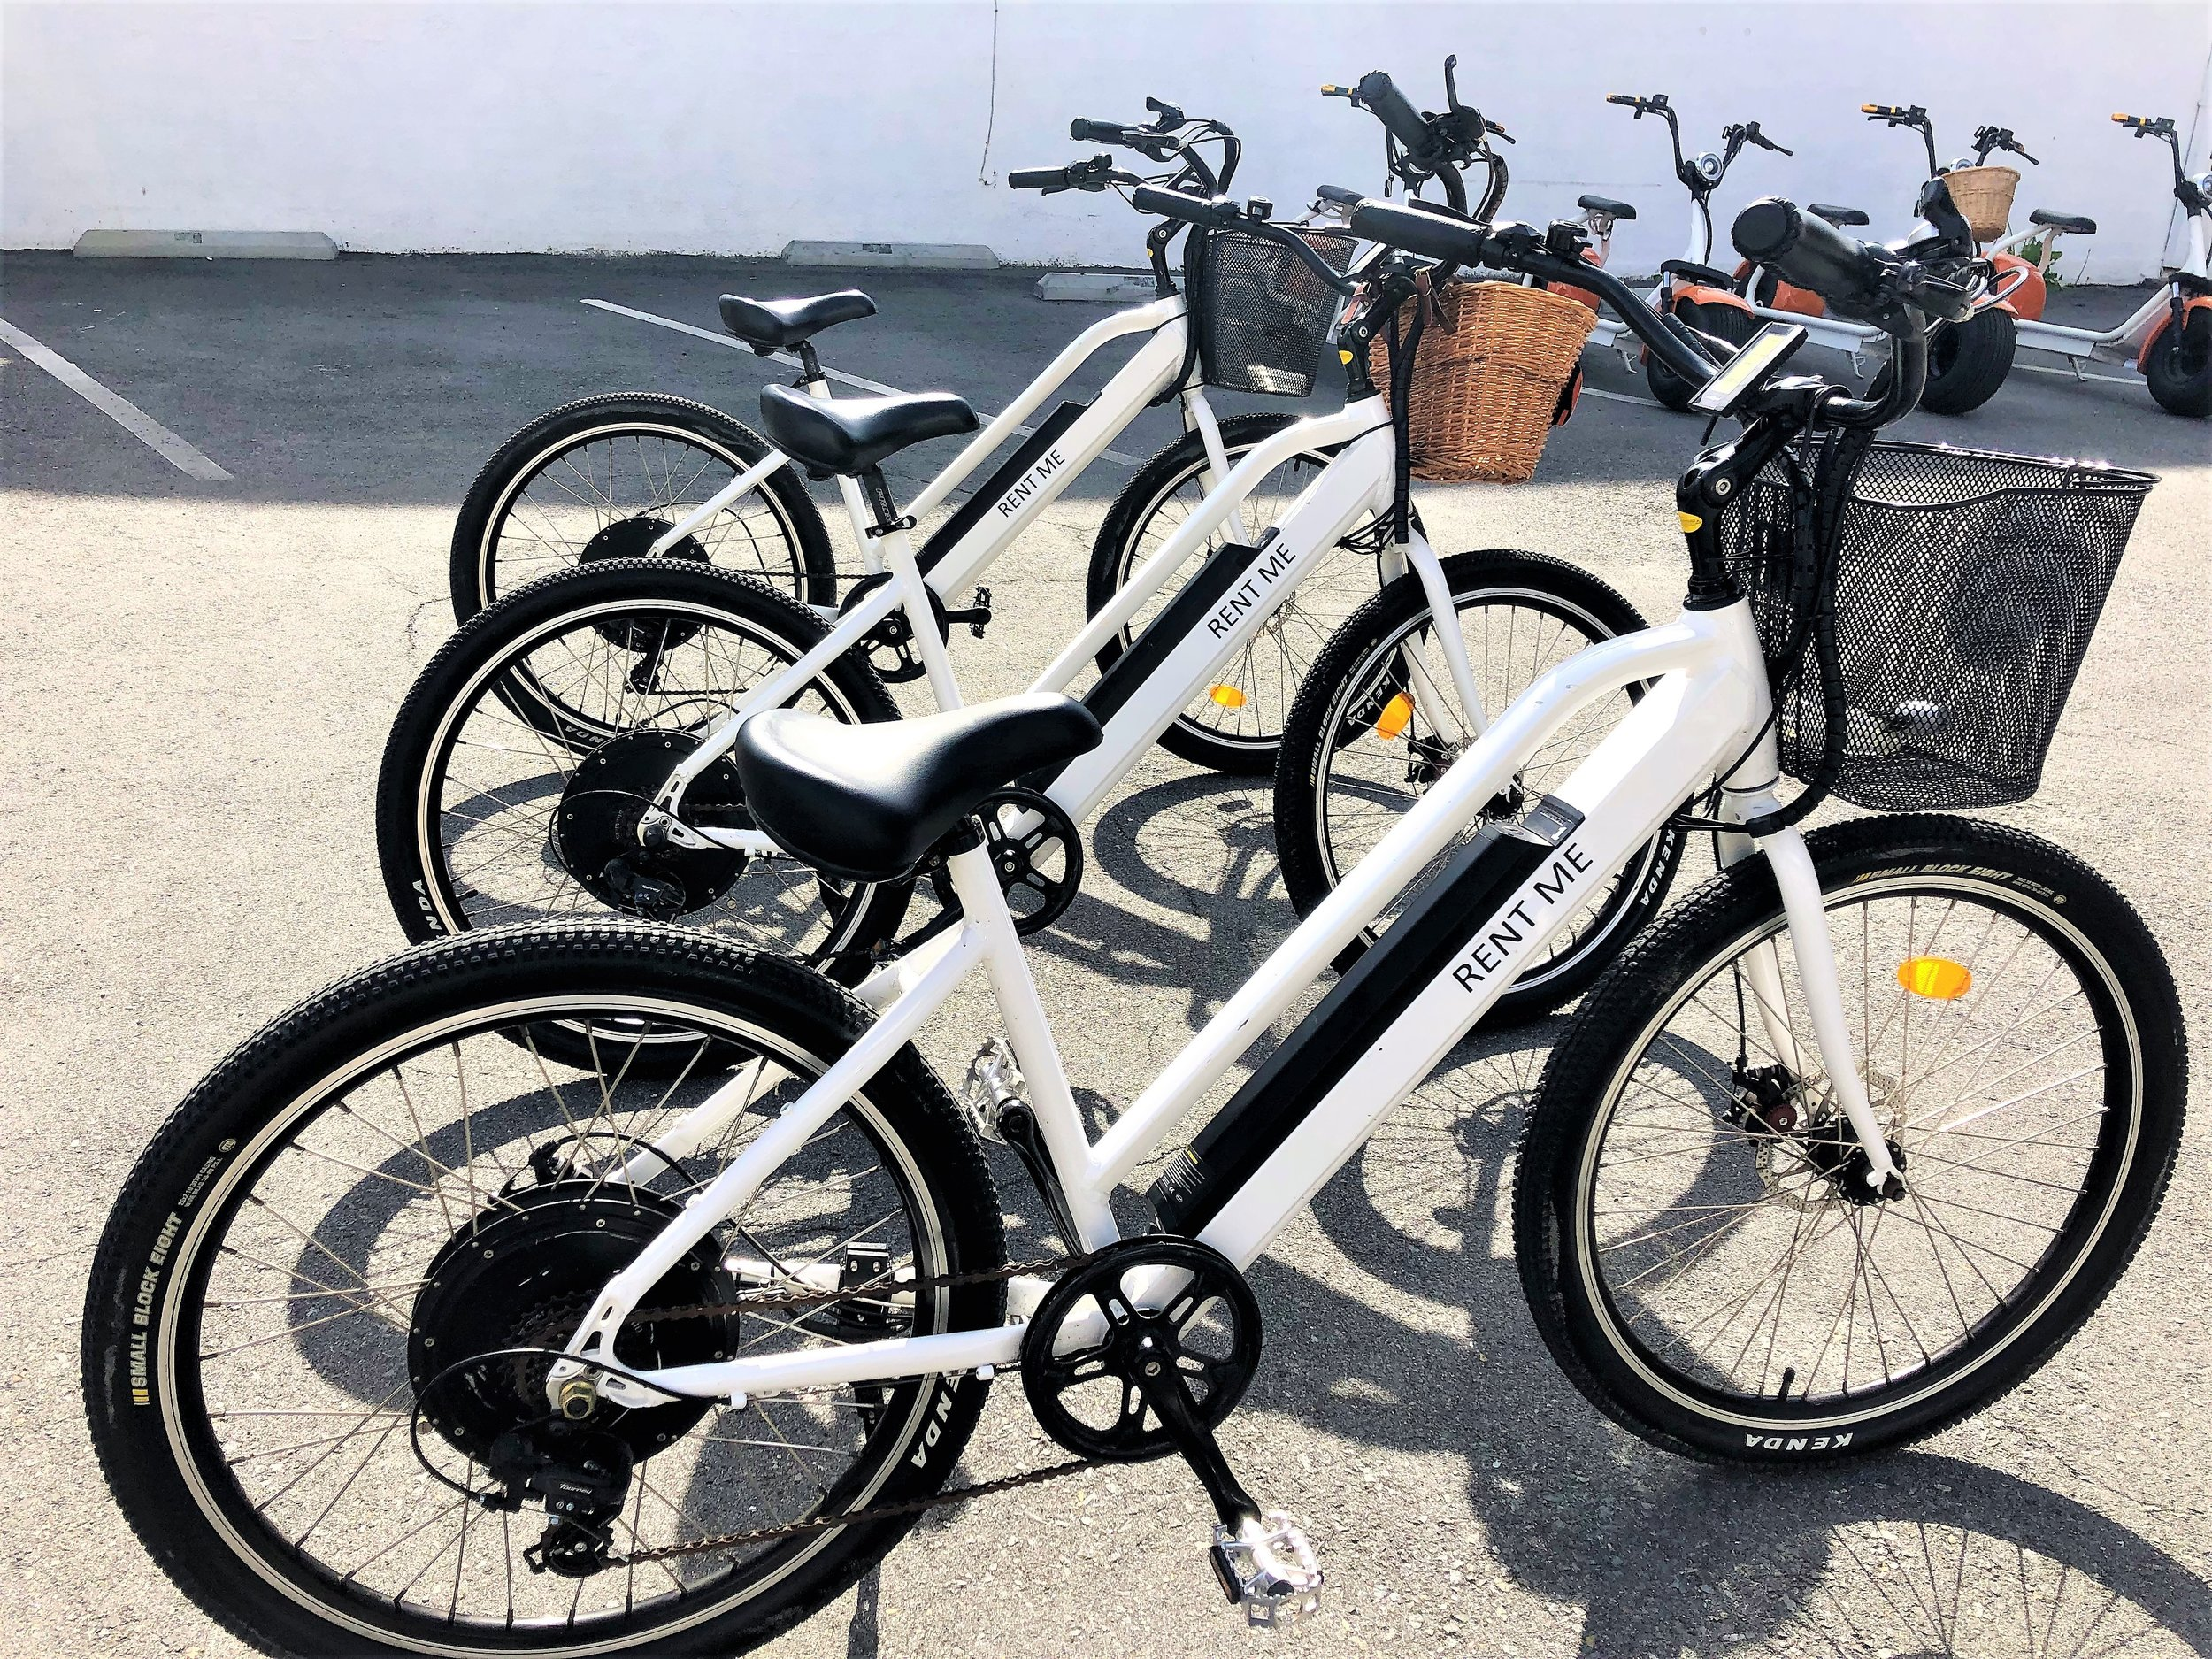 Electric Bikes - HRLY $301/2 DAY $80FULL DAY $110CONTACT US!